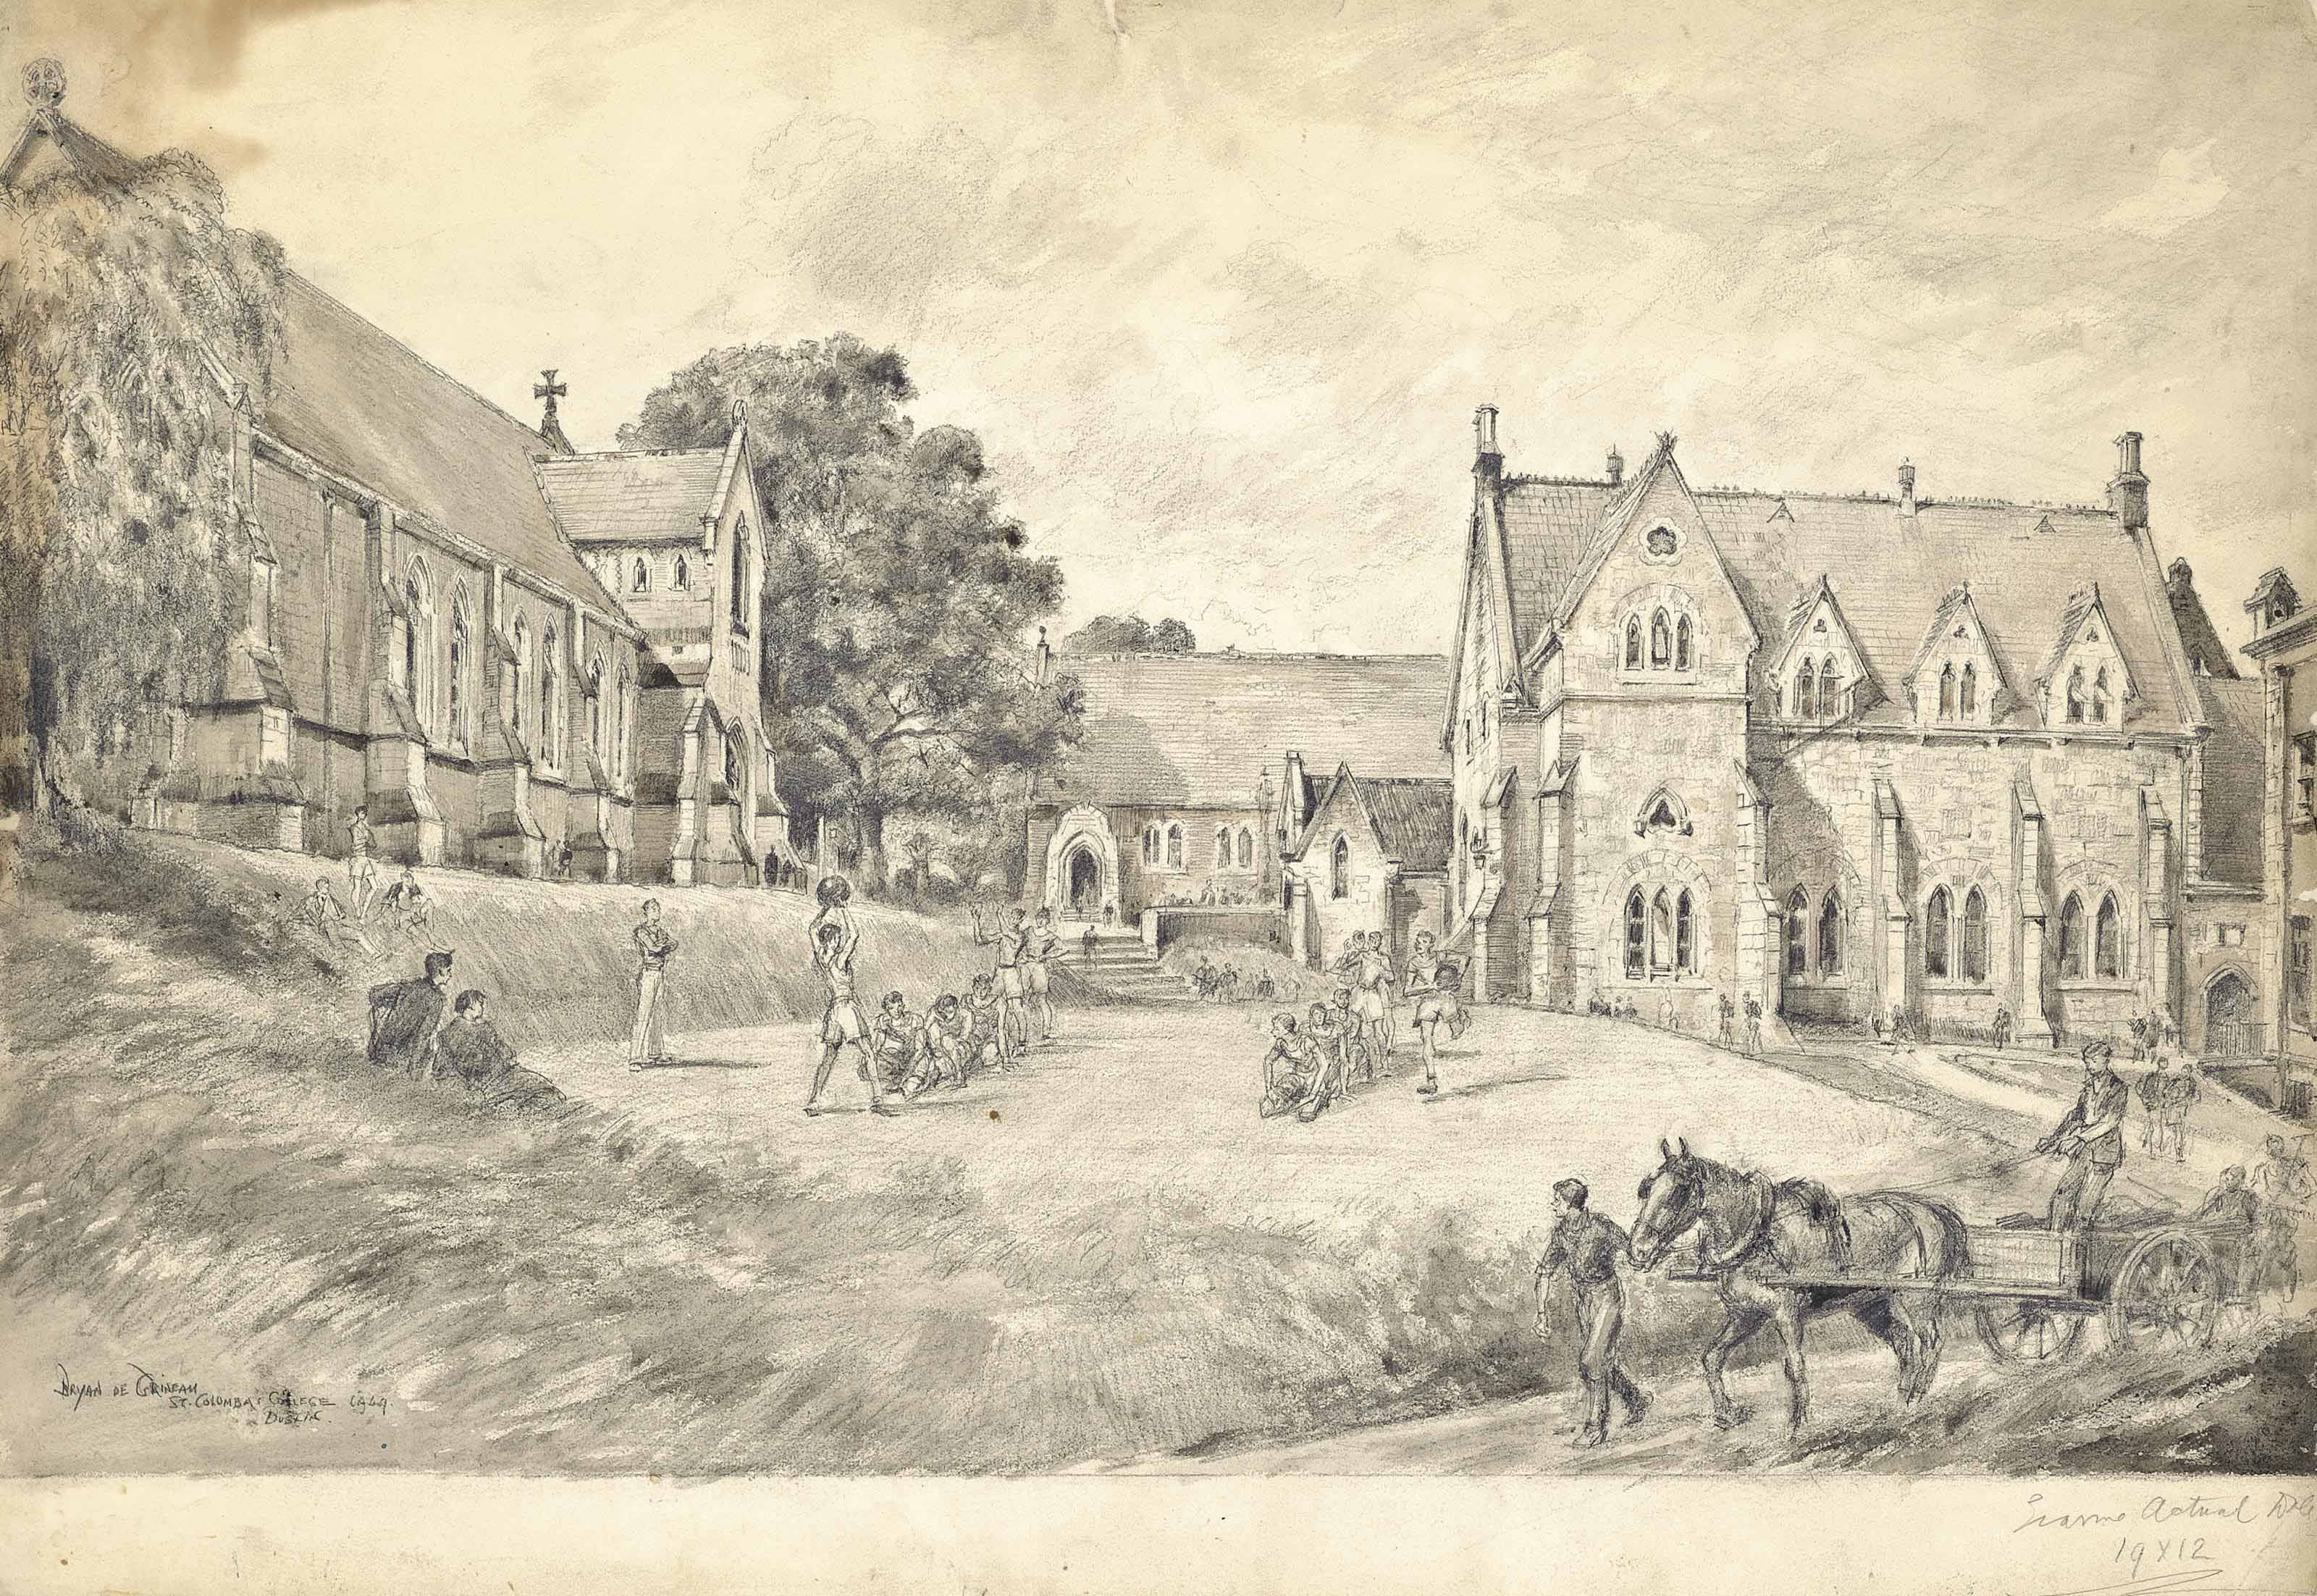 The famous Irish public school which celebrated its centenary this year: St. Columba's College, a view from the east, showing (left) the chapel, and (right) the dining-hall